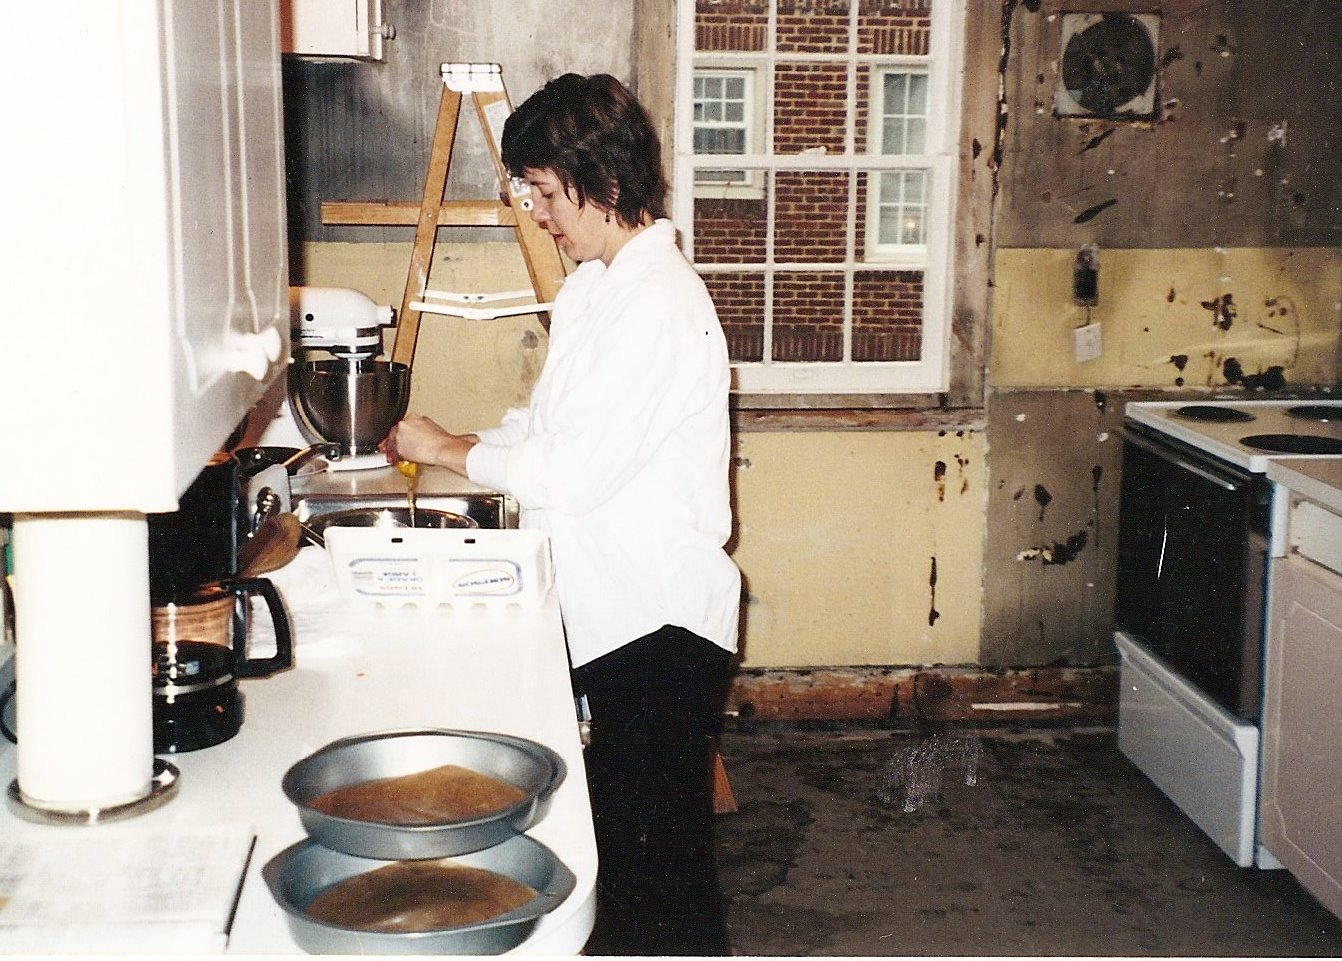 Where it all began! Robin, baking at home amongst a kitchen remodel! Circa 2001.